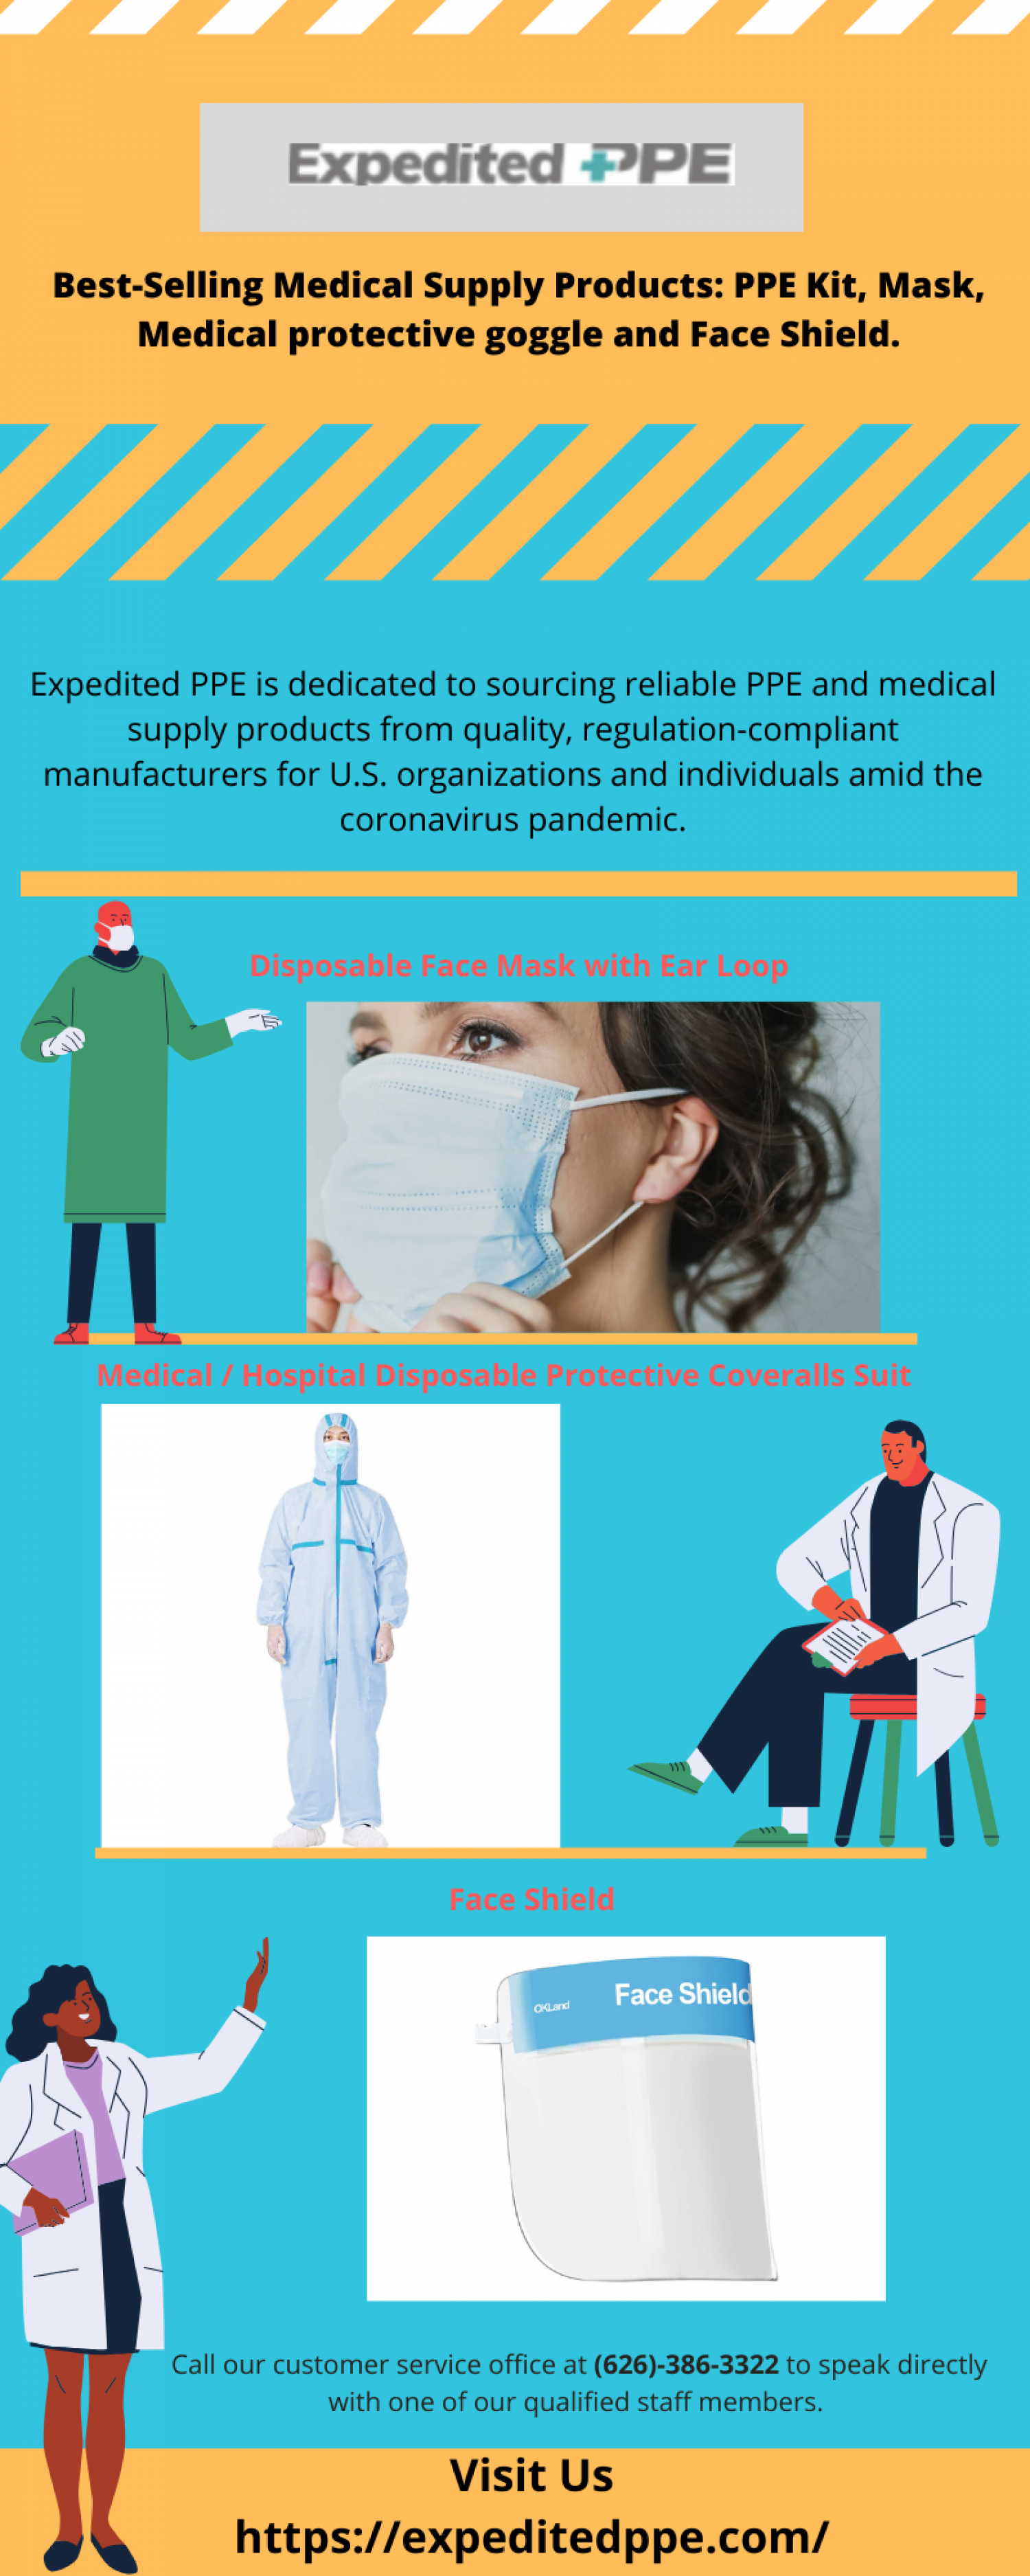 Personal Protective Equipment- Expedited PPE Infographic